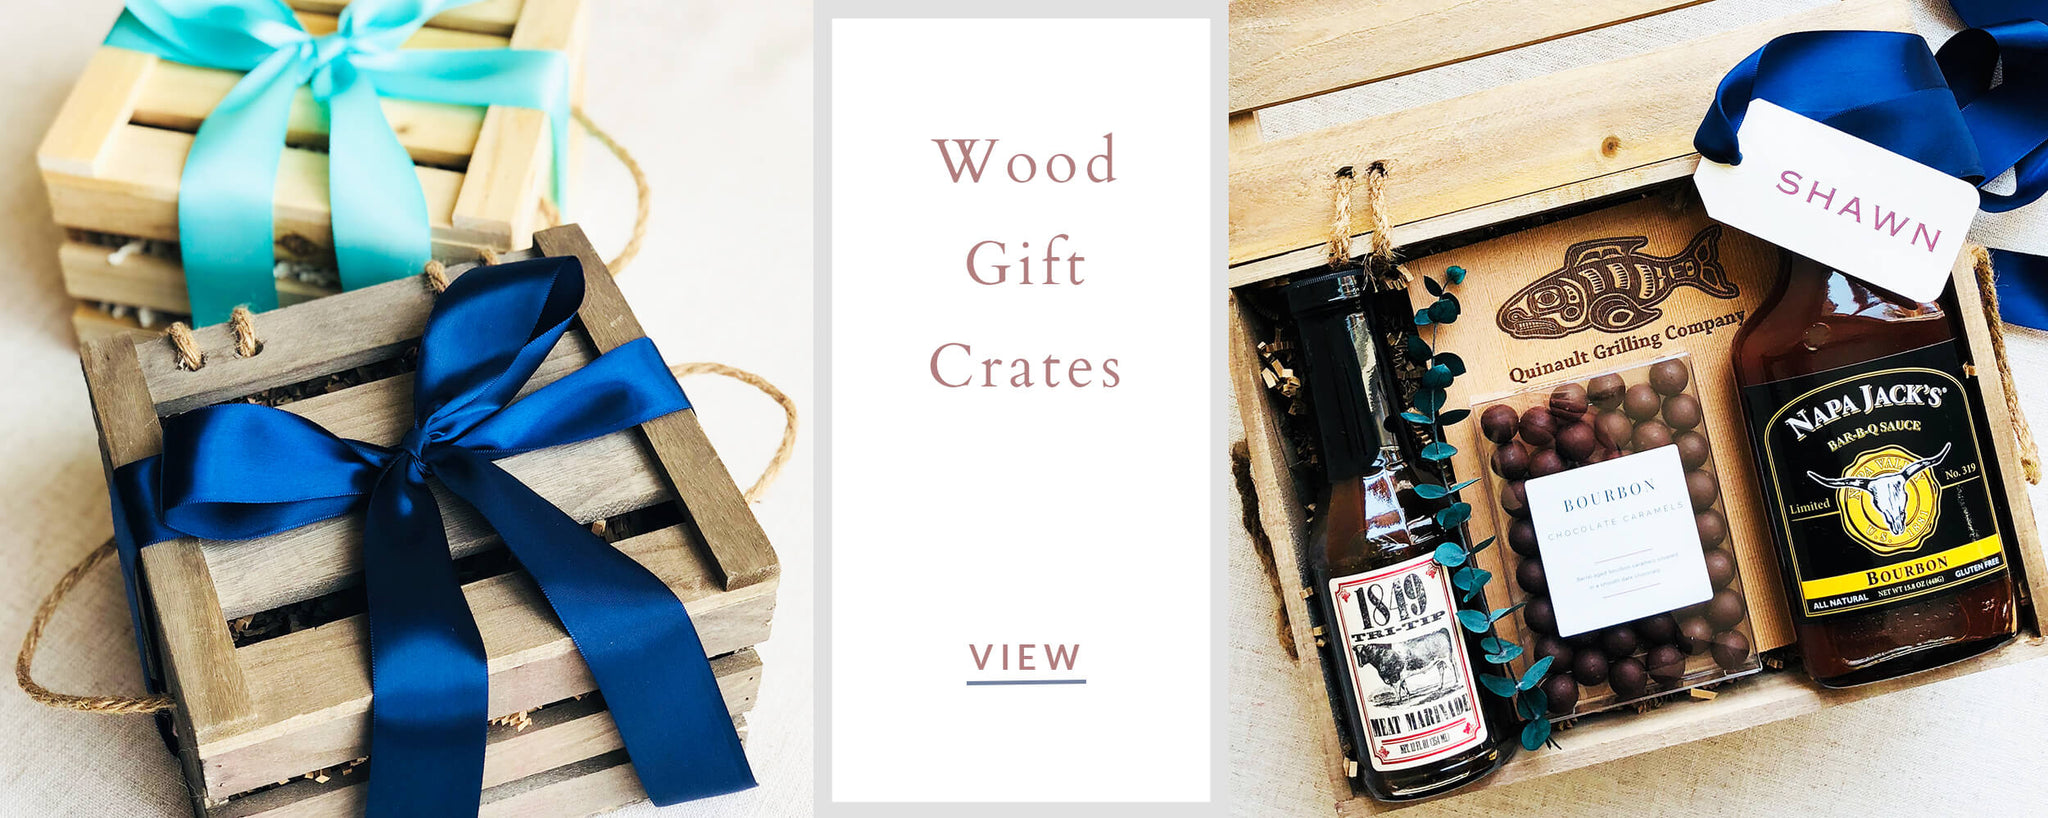 Custom Corporate Gifts - Wood Gift Crates